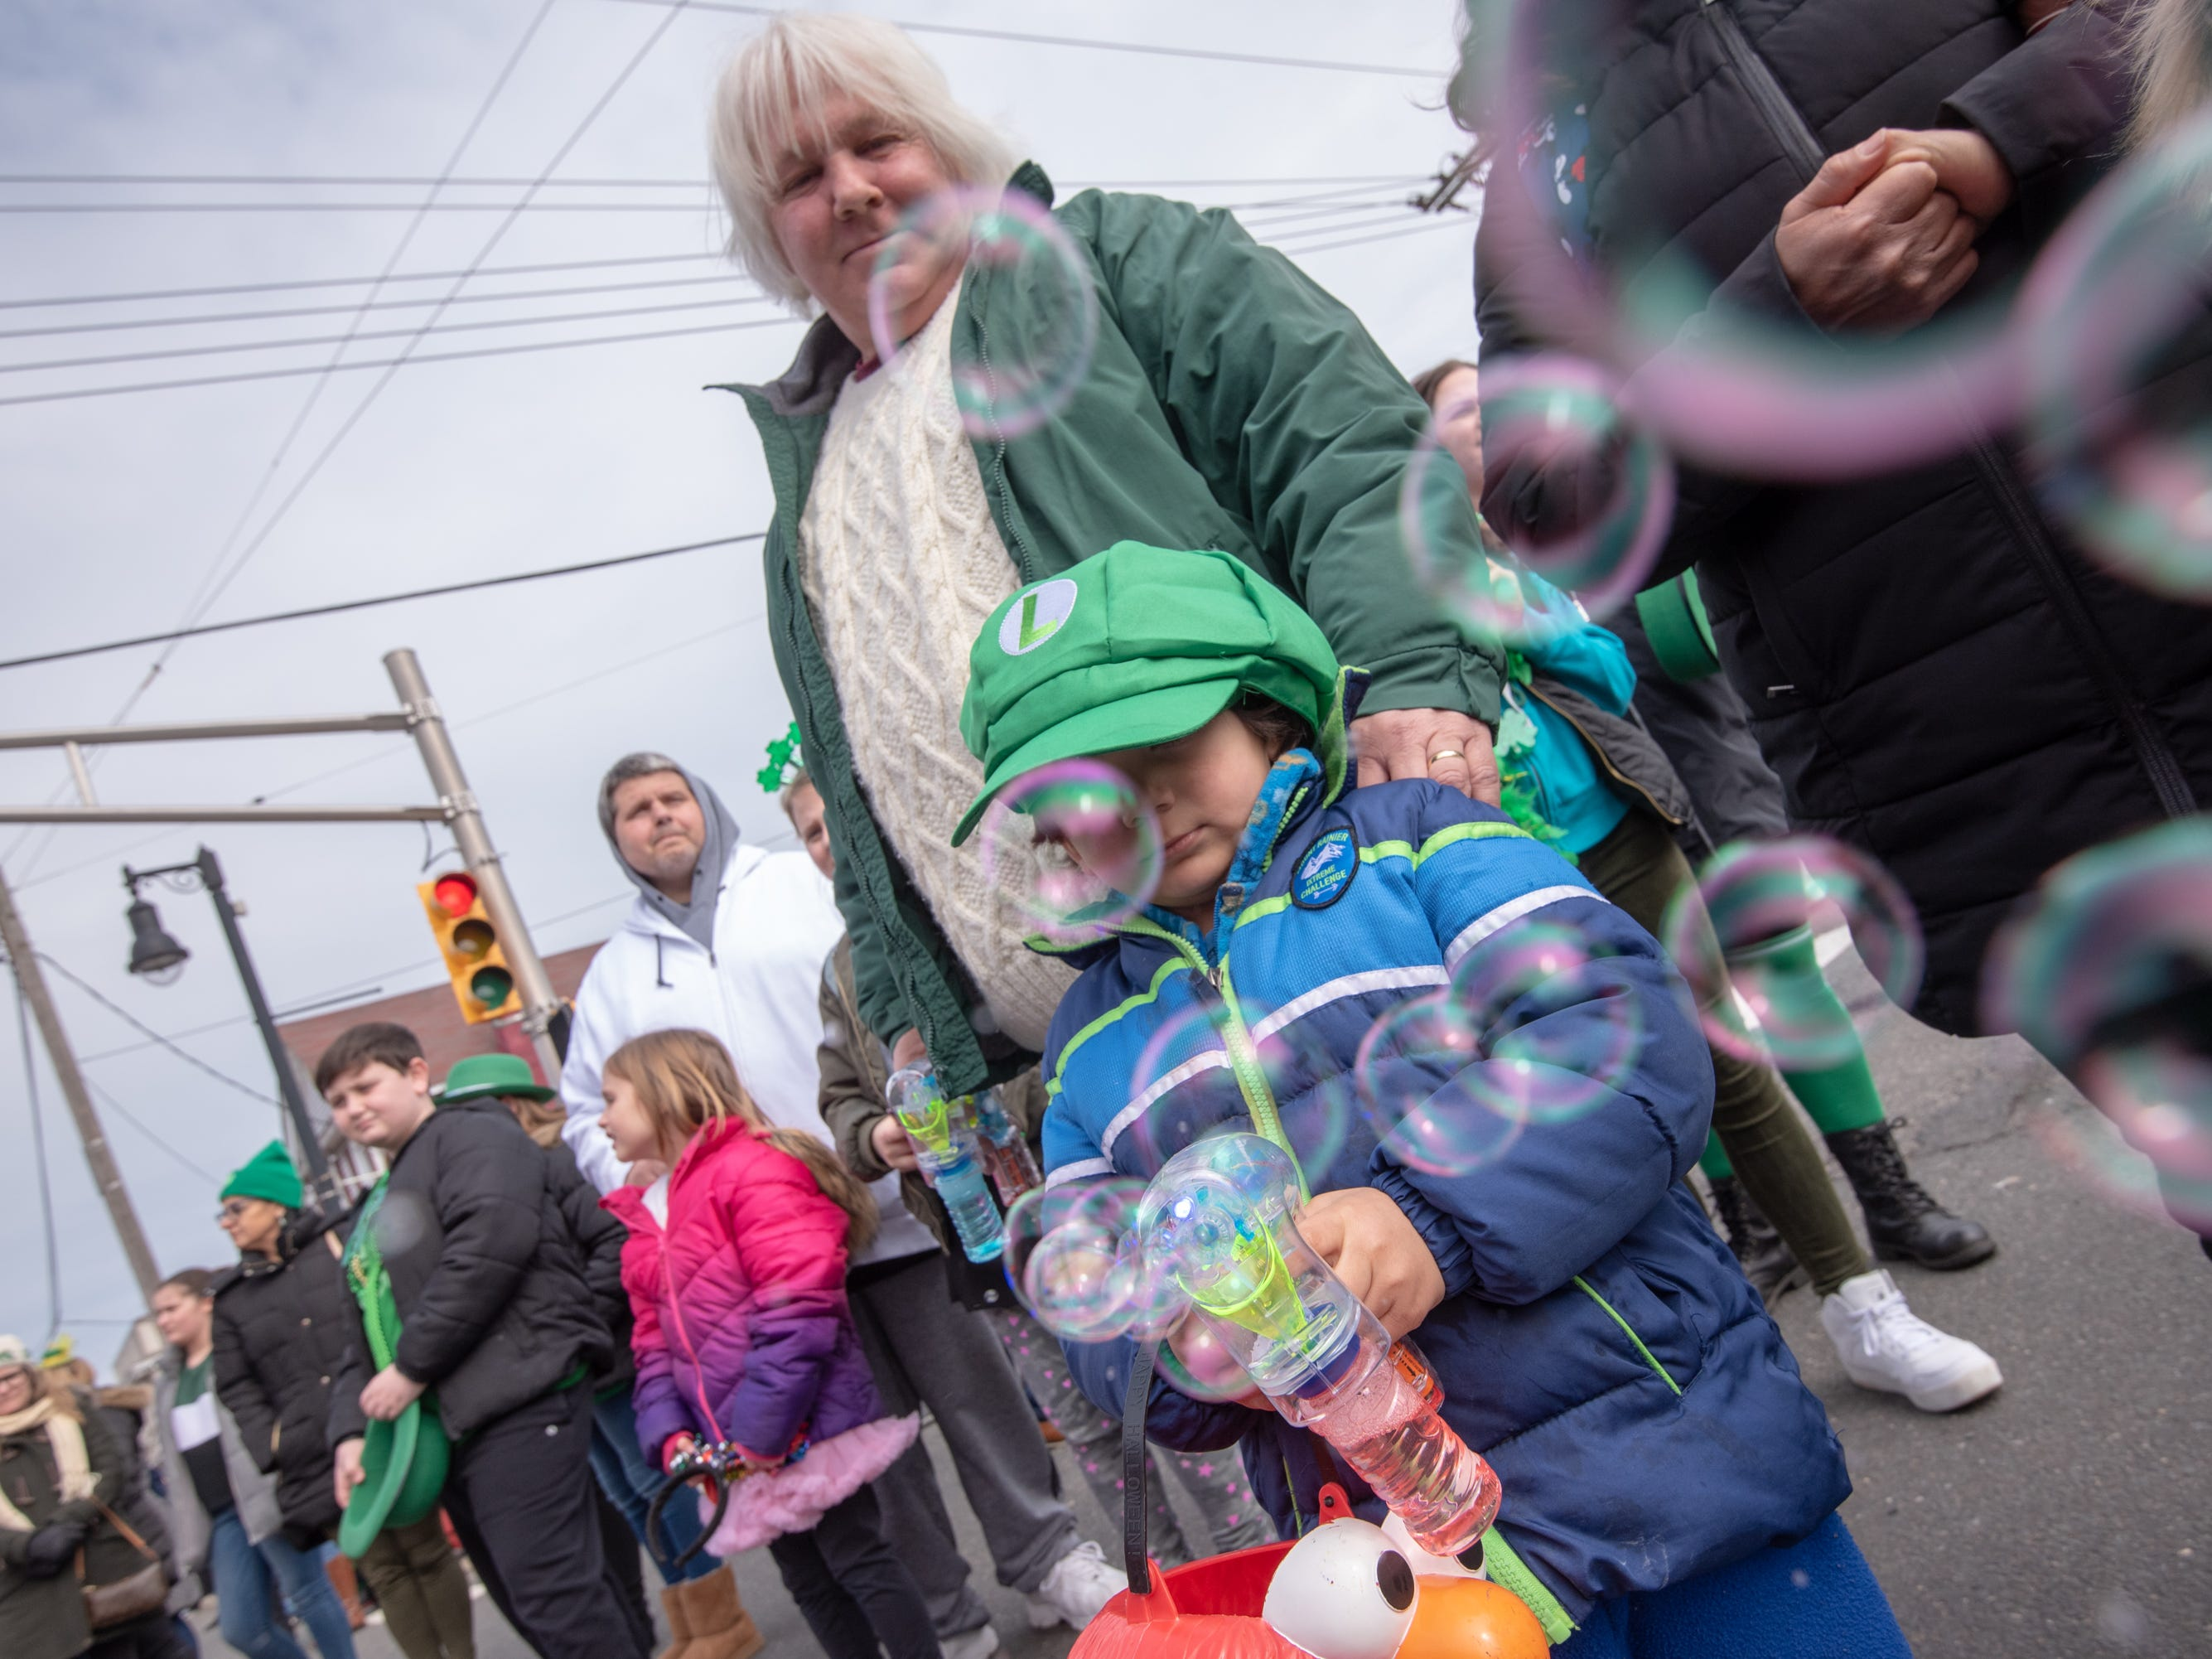 Matthew Andrews ,3,  of Atlantic Highlands blows bubbles. The 46th annual Belmar/Lake Como St. Patrick's Day Parade was held in Belmar on March 3, 2019.